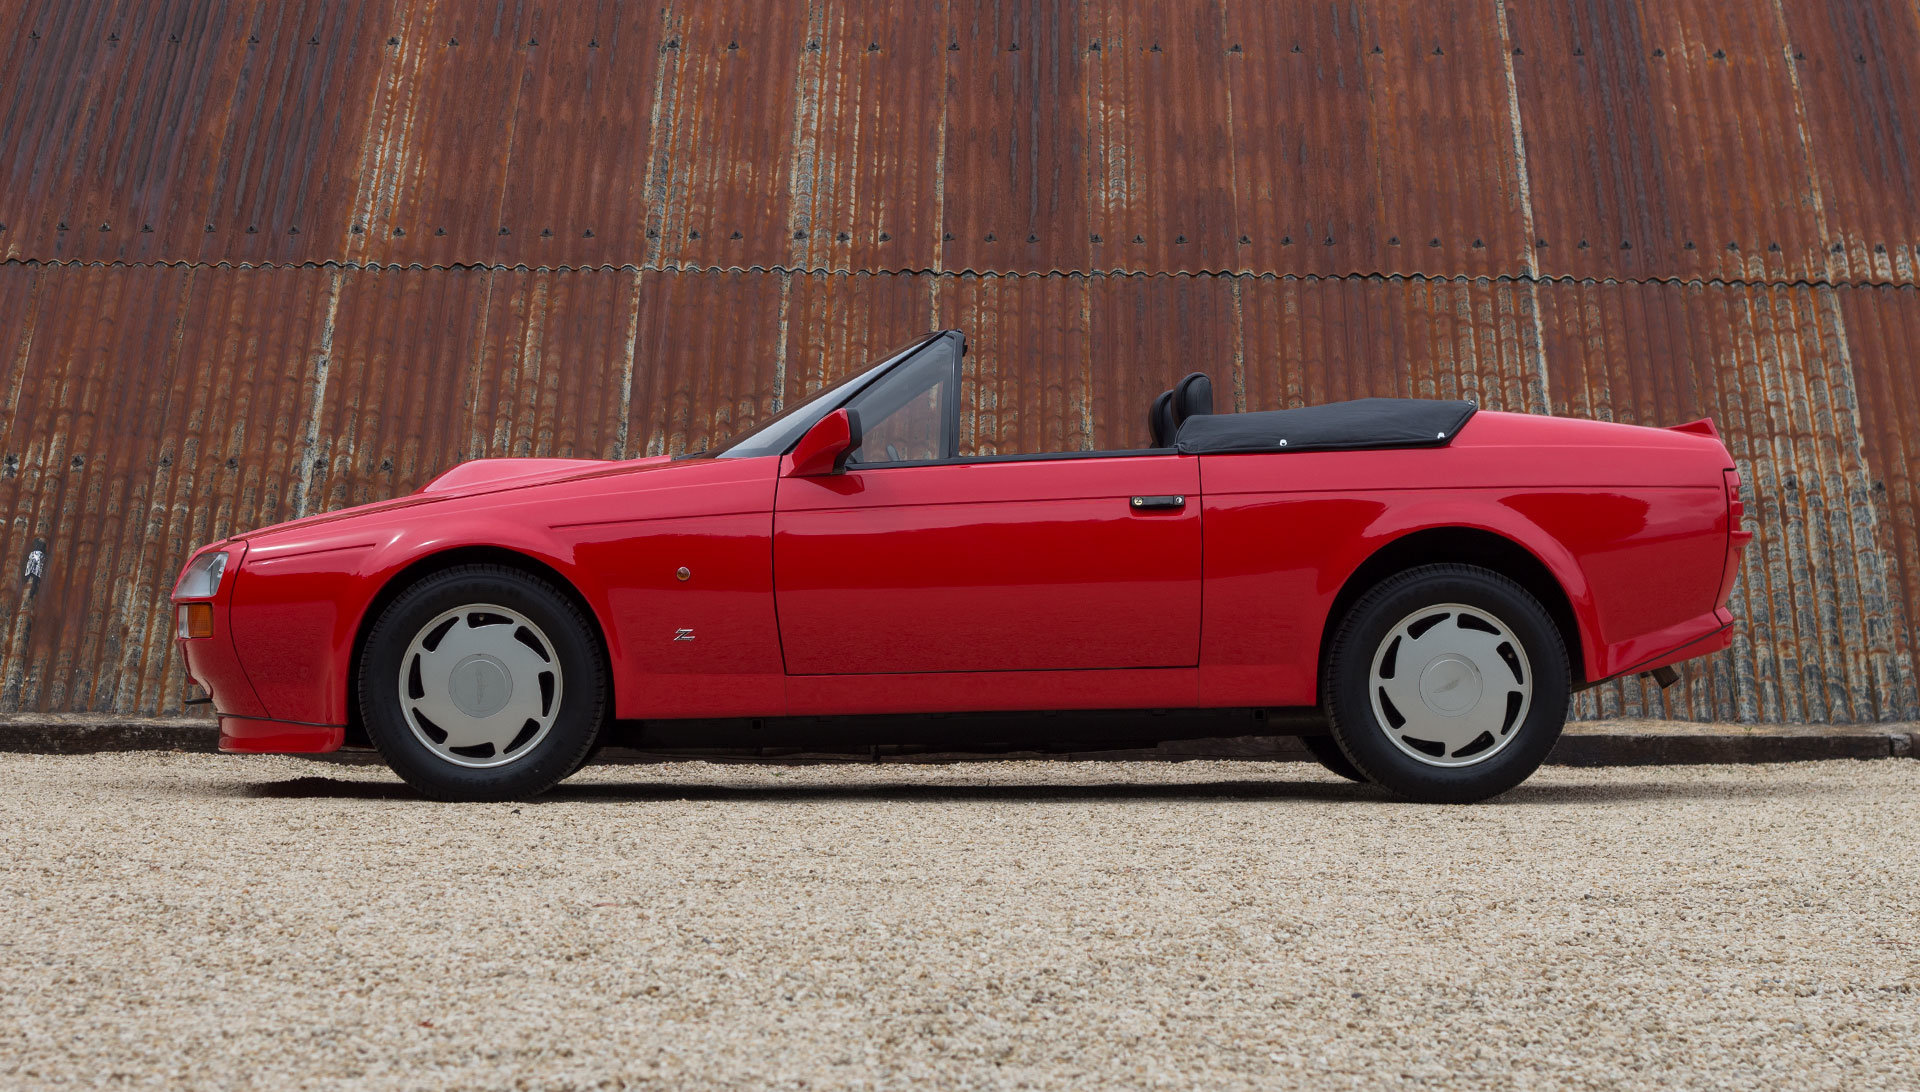 1989 Aston Martin V8 Vantage Volante Zagato - Unregistered For Sale (picture 2 of 24)